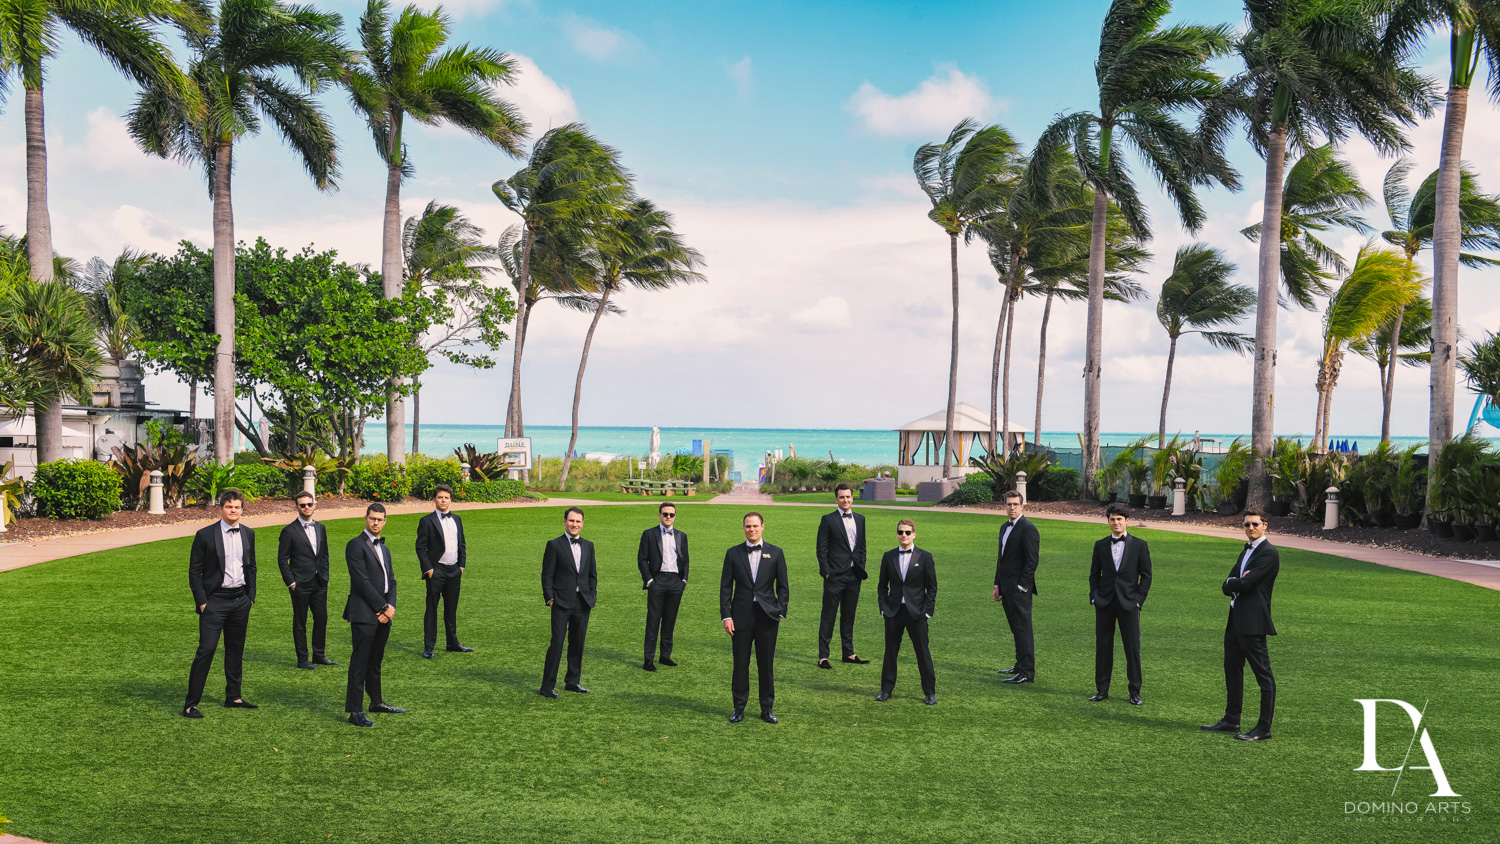 creative groomsmen pictures at A Ritz Carlton Wedding in Key Biscayne by Domino Arts Photography